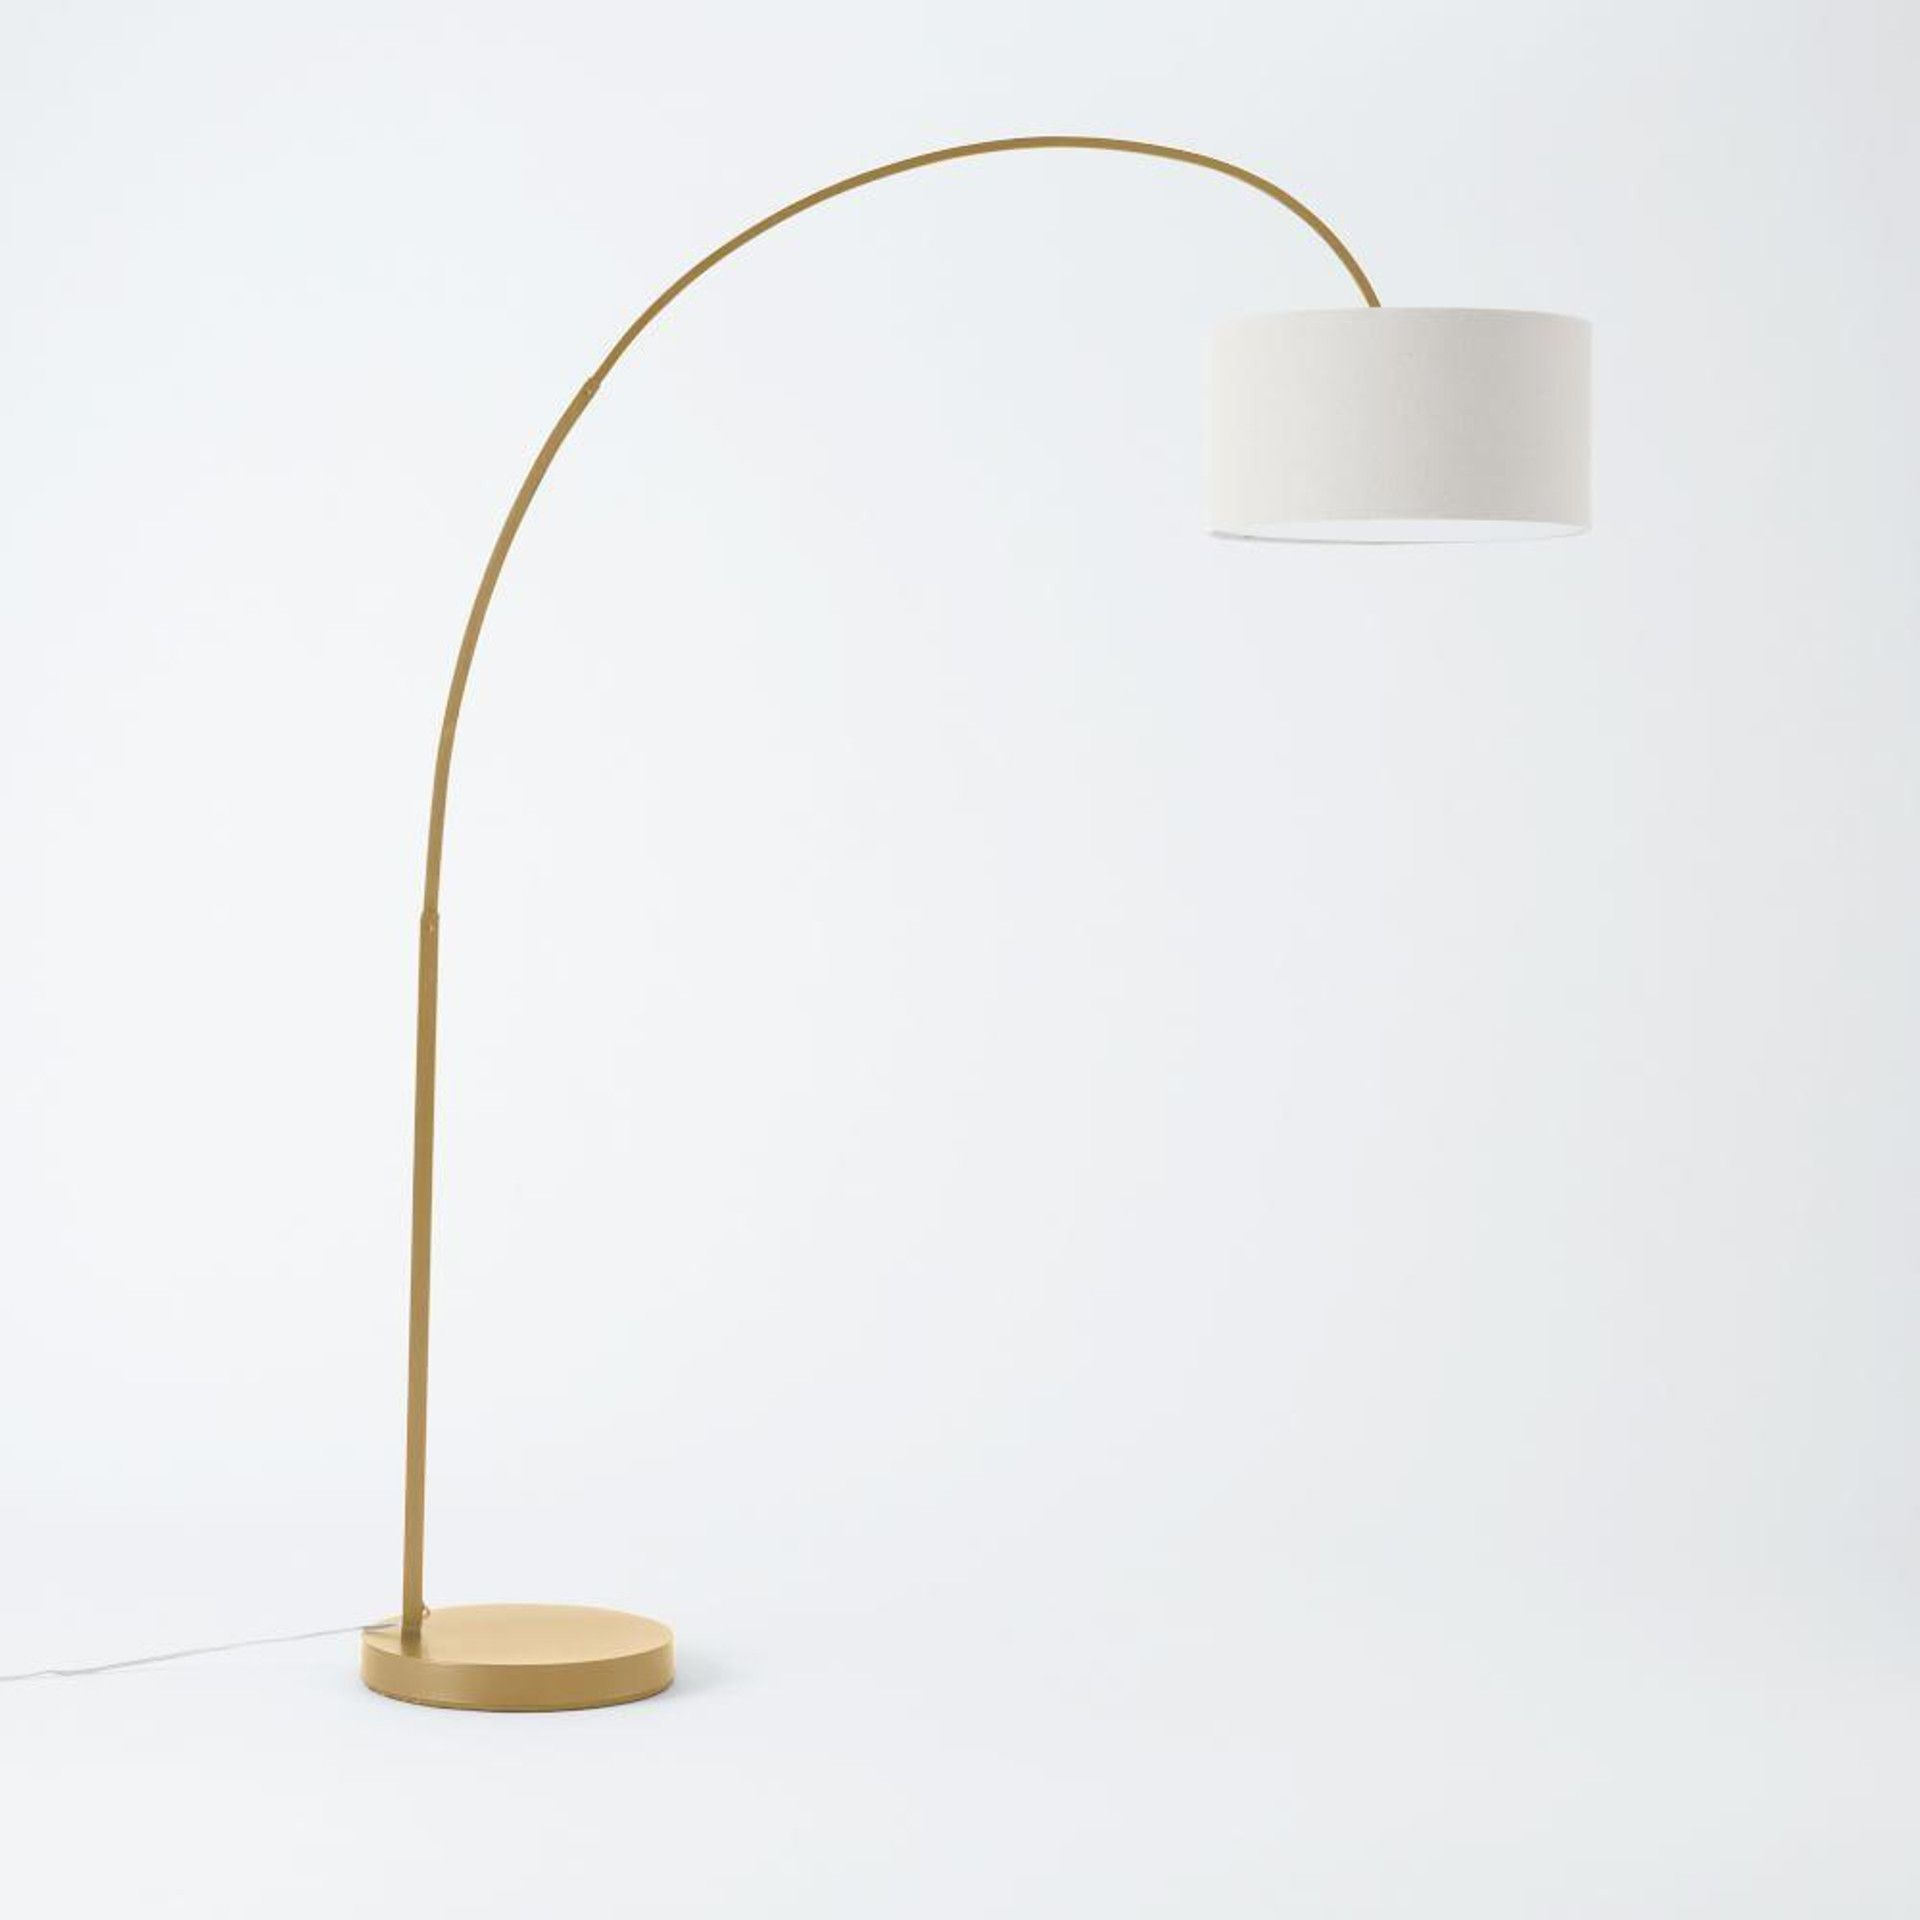 Overarching Linen Shade Floor Lamp in 2020 Overarching